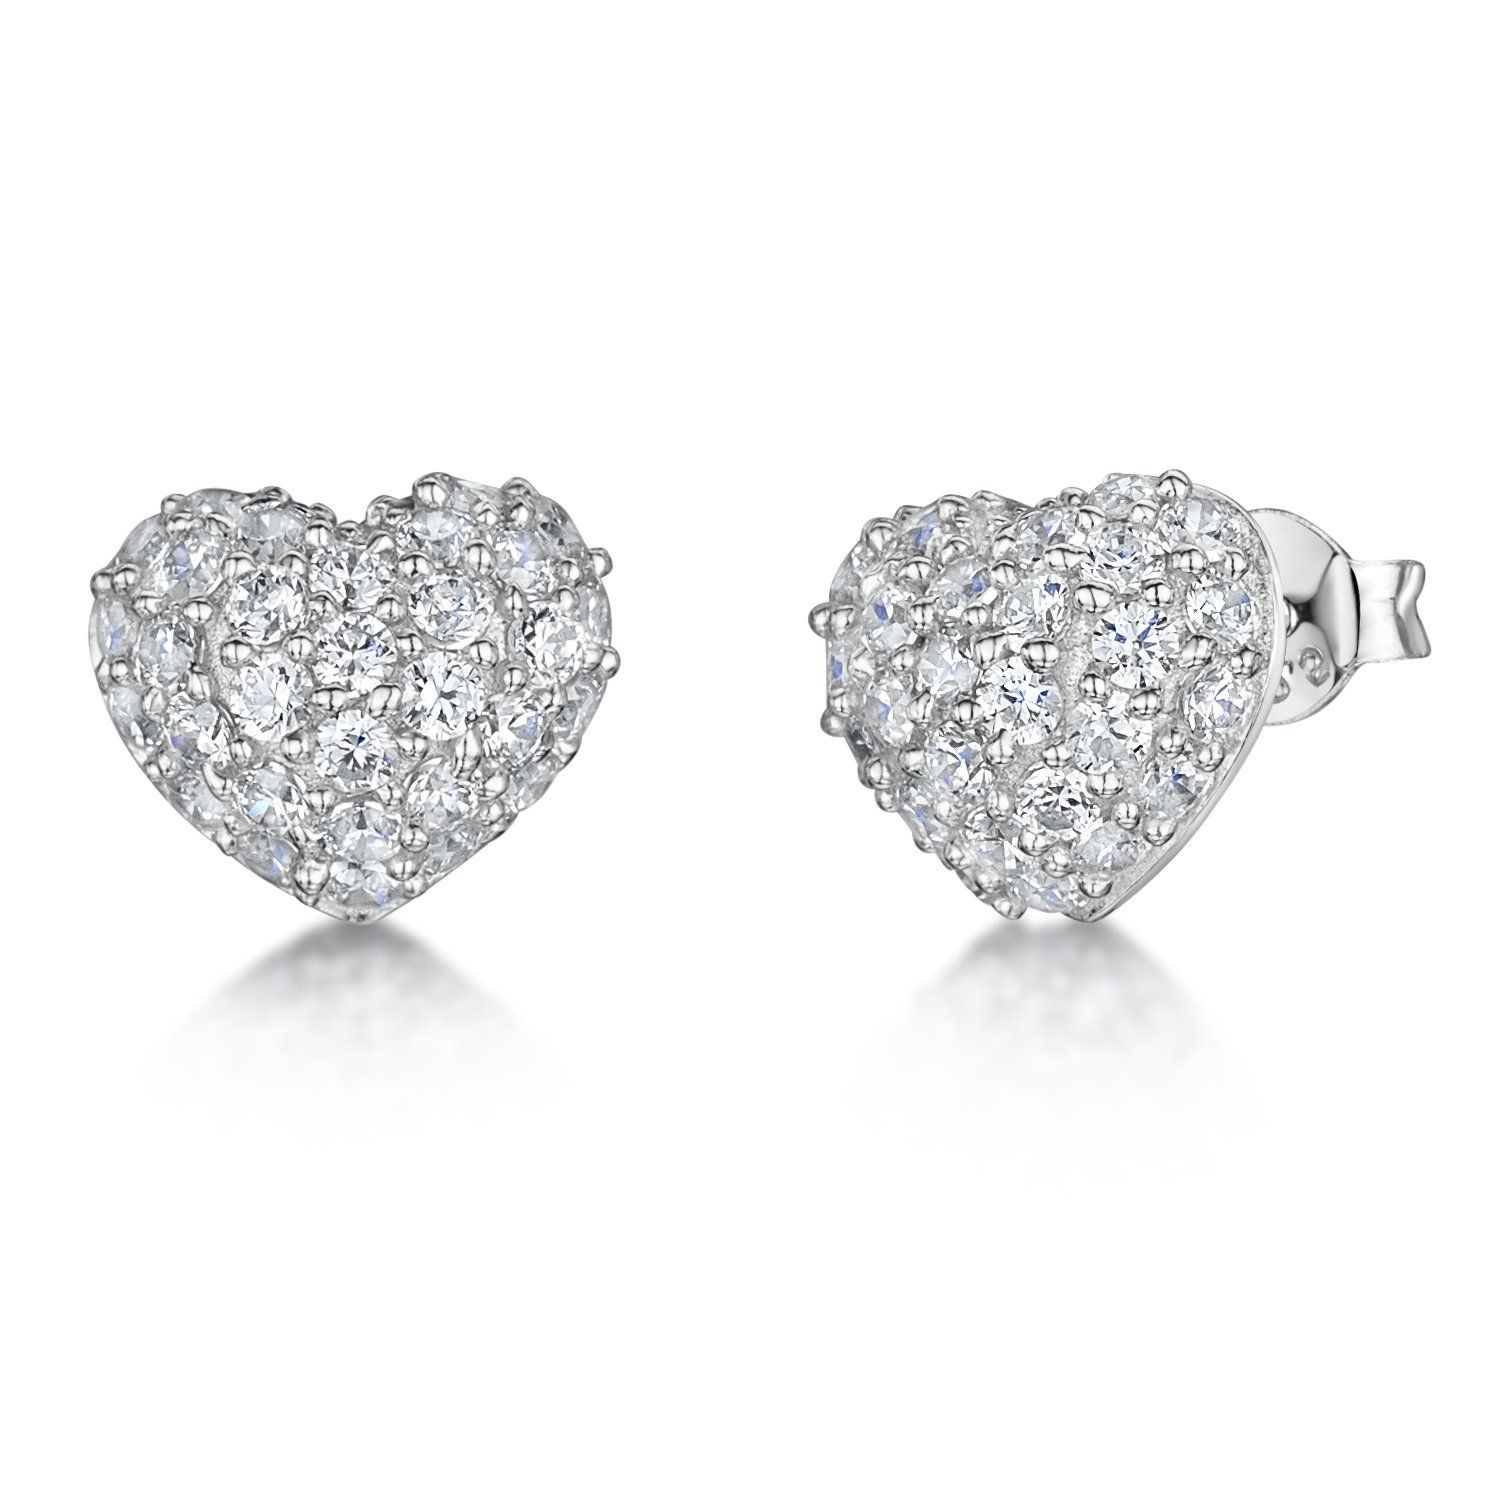 1c9a6fb98 Heart Stud Earrings Pave Set - CZ Stone | JOOLS By Jenny Brown - Jools By